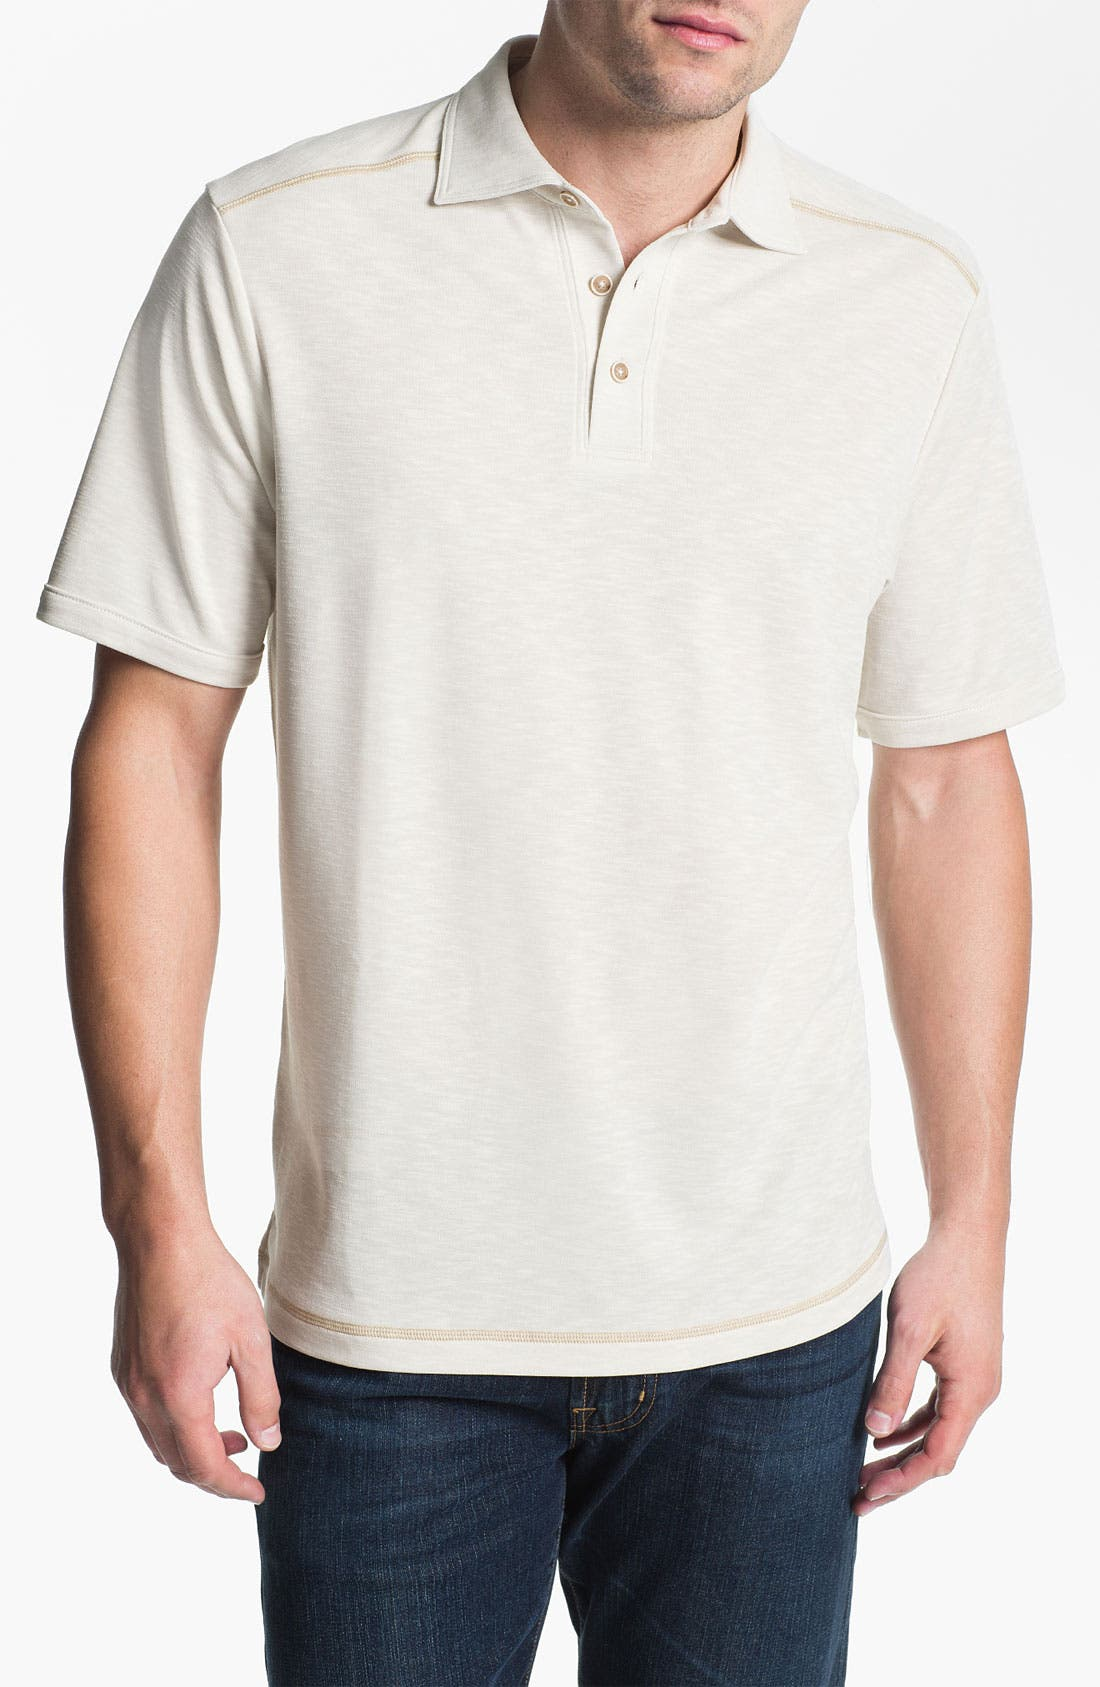 Alternate Image 1 Selected - Tommy Bahama 'Paradise Blend' Polo (Big & Tall) (Online Only)